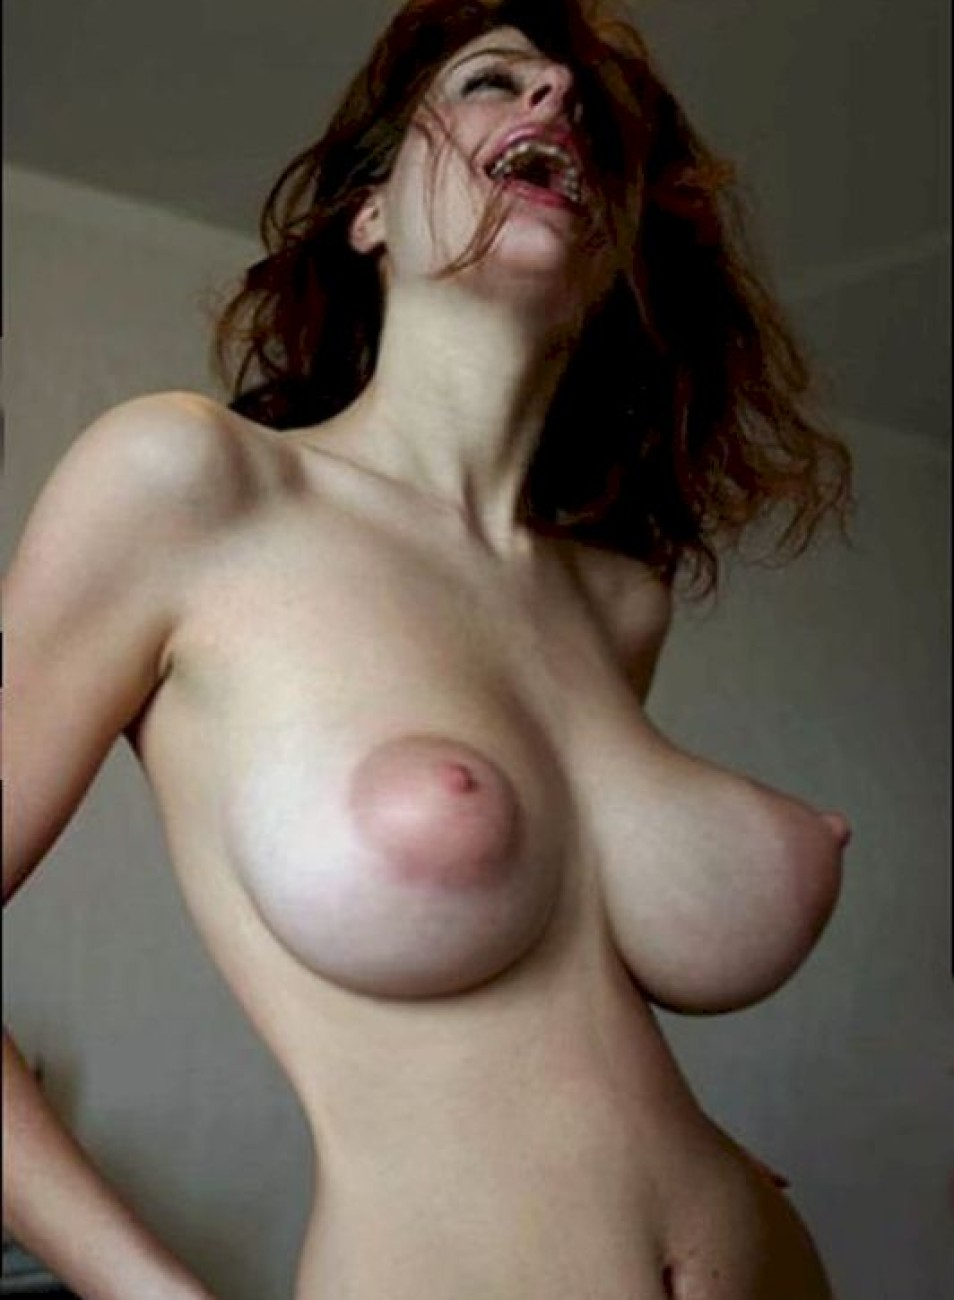 Cropped-Seemygf-Amateur-Ex-Girlfriend-Porn-Pictures-Free -3508